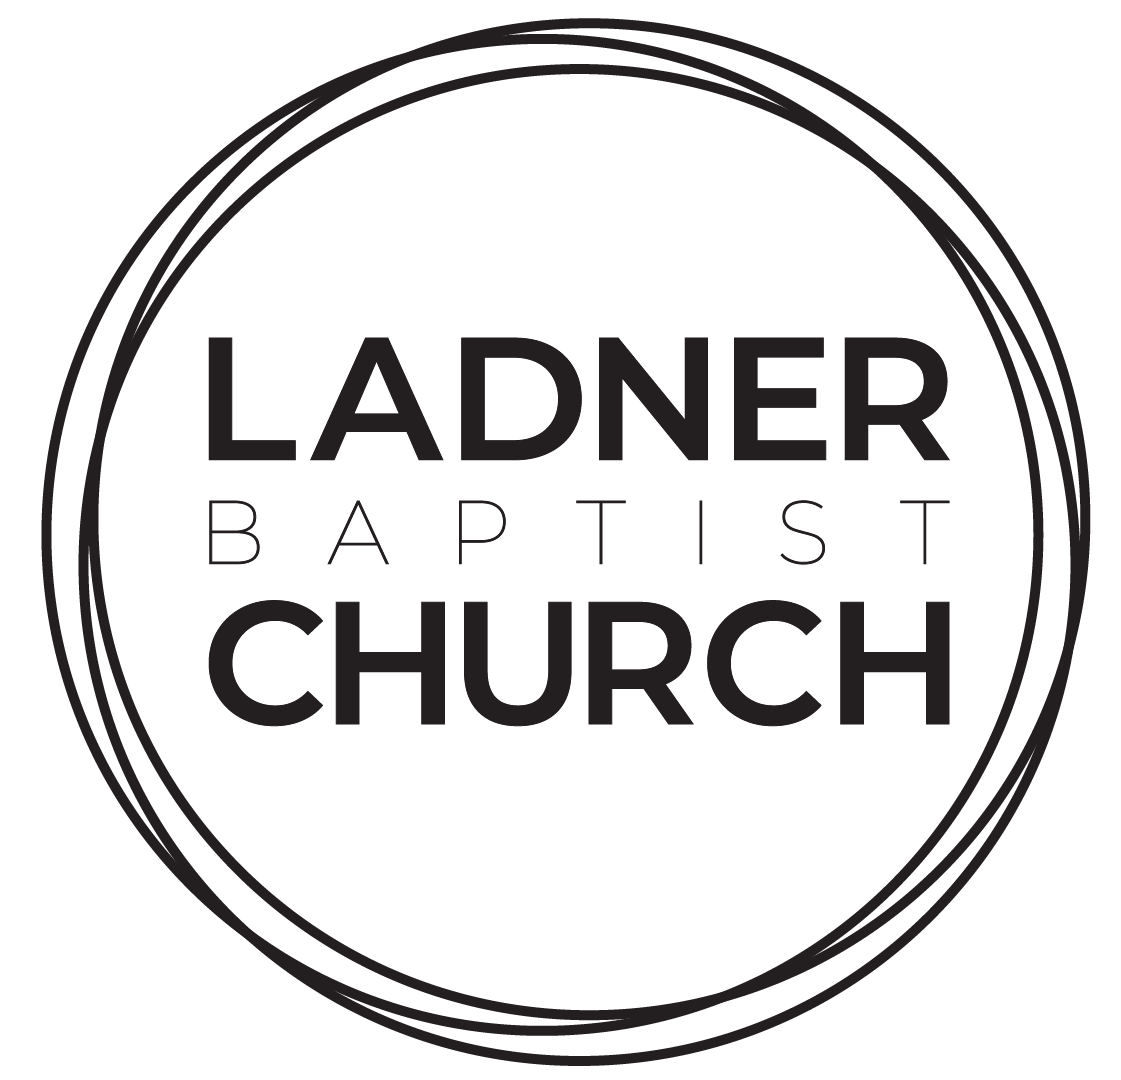 Ladner Baptist Church